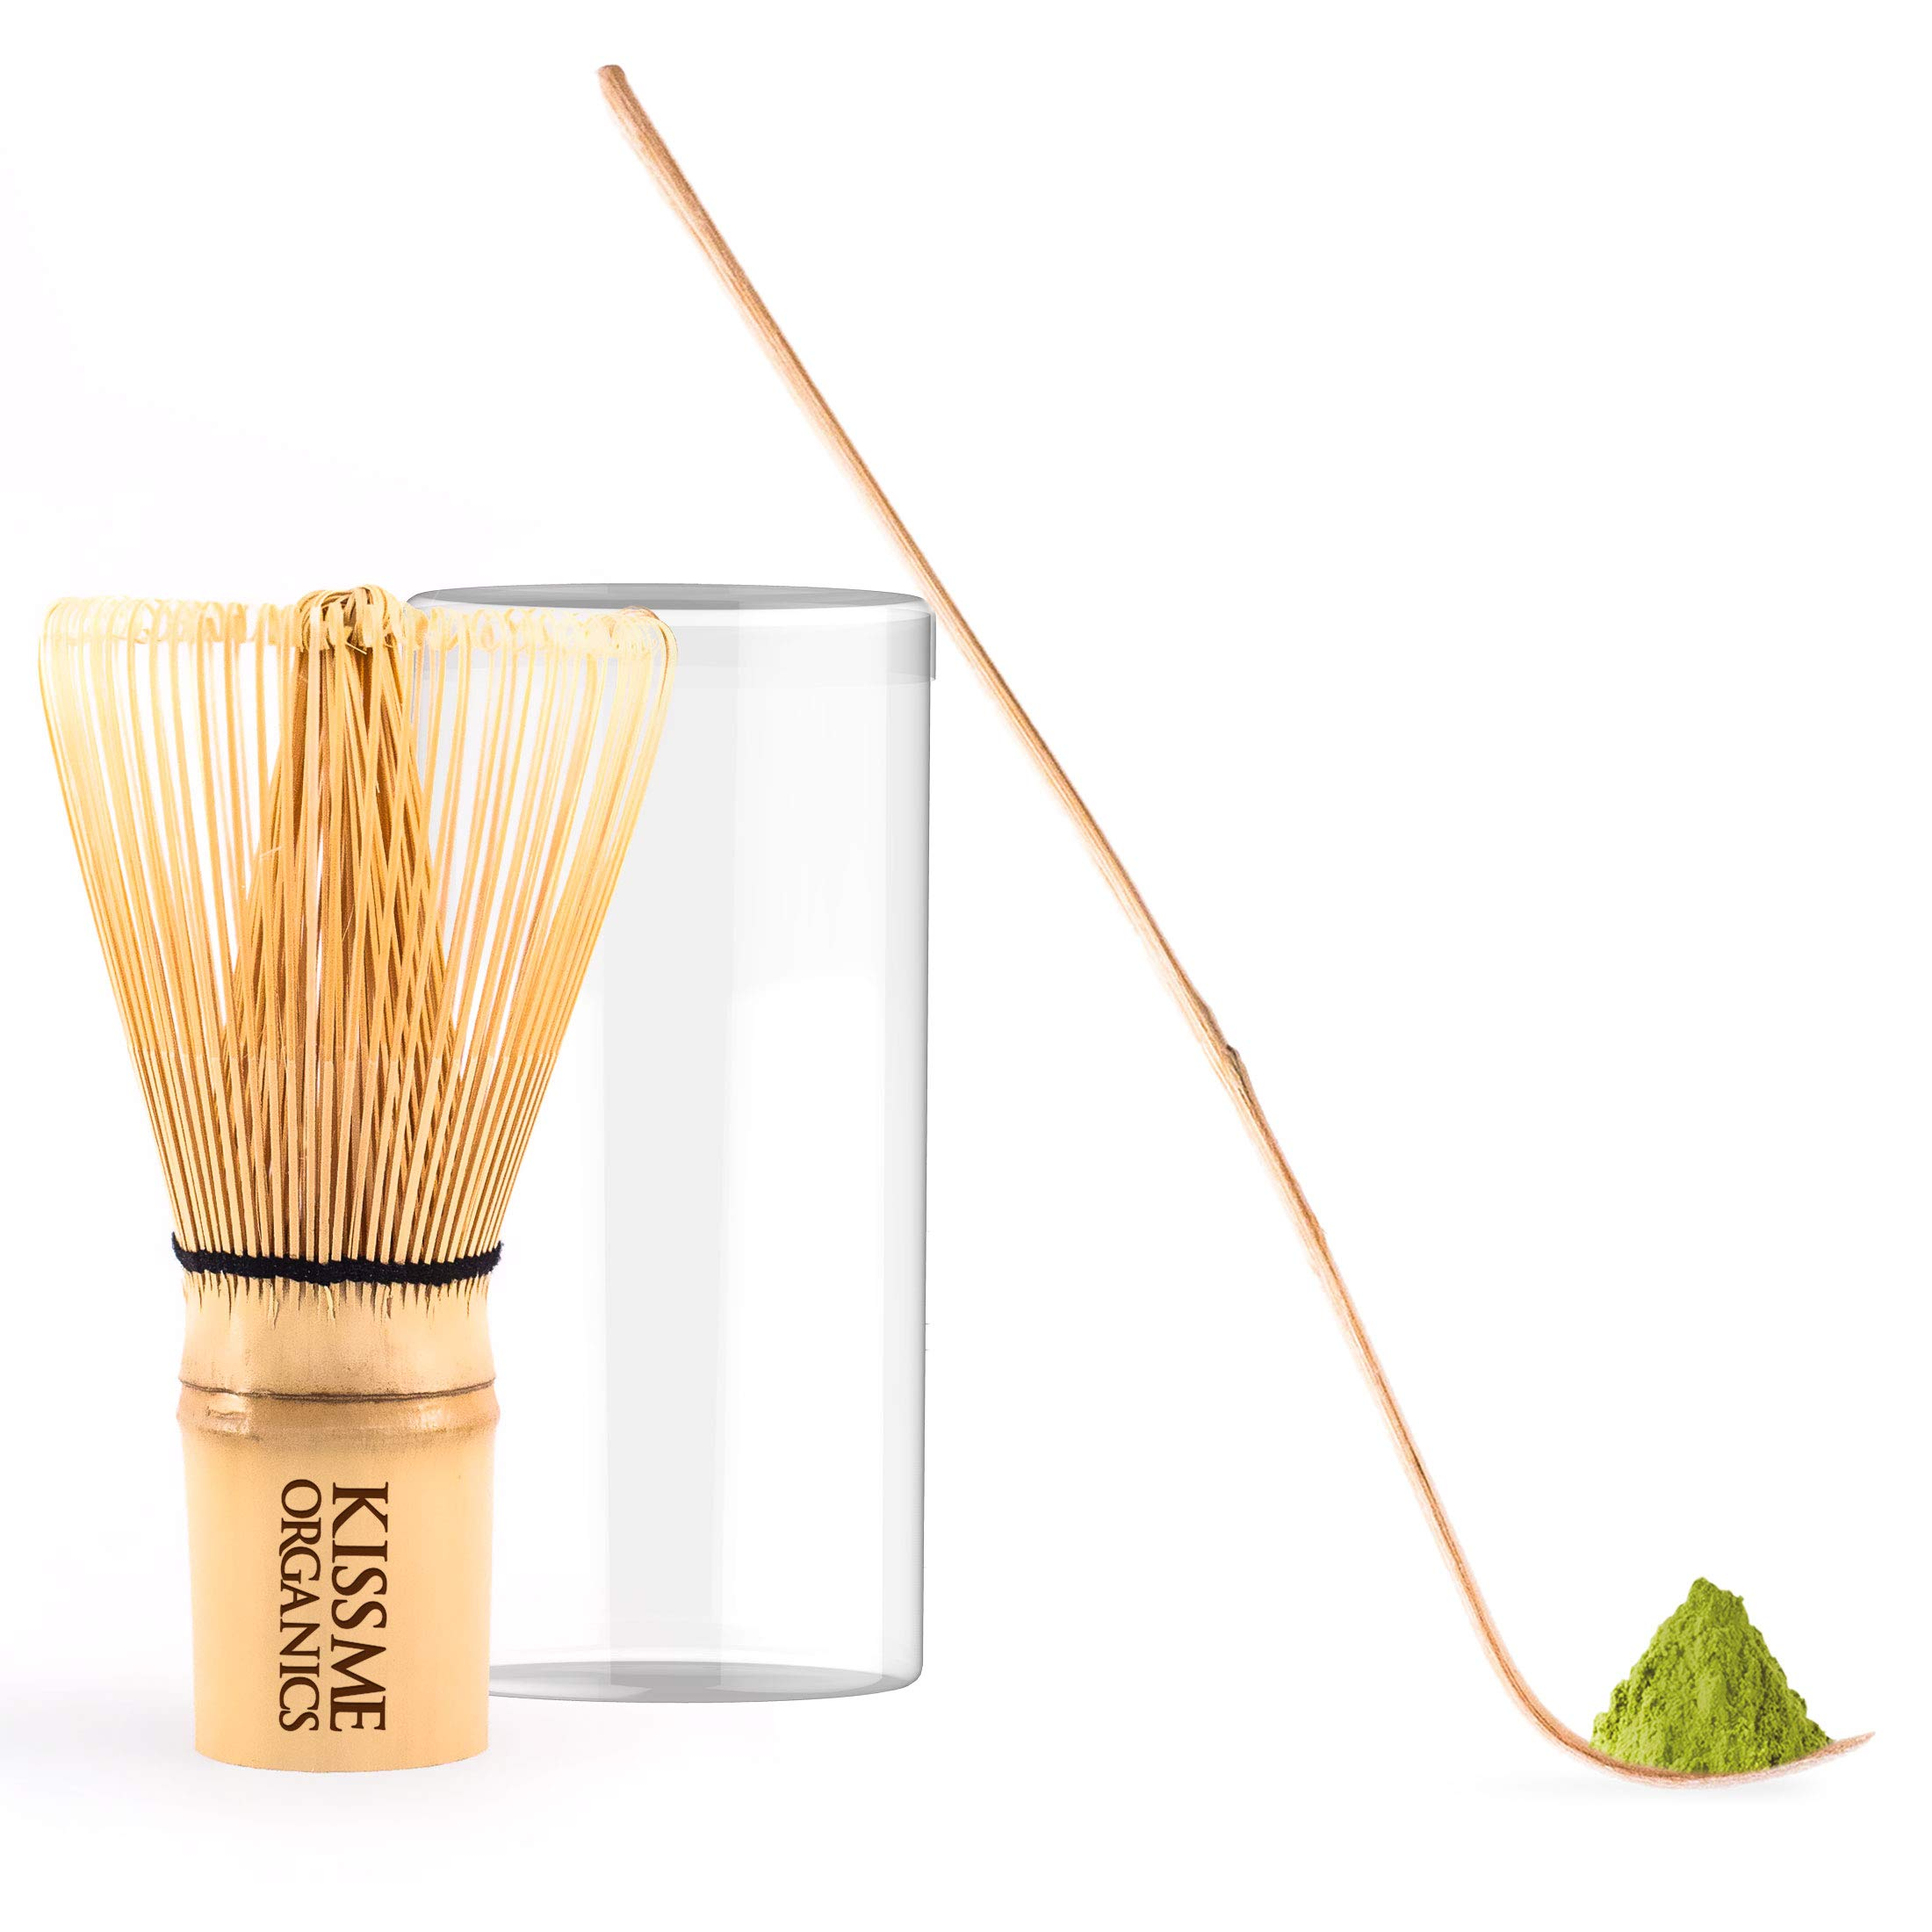 Matcha Tea Set - Perfect for a Traditional Cup of Matcha - Bamboo Whisk and Scoop (2 Units)